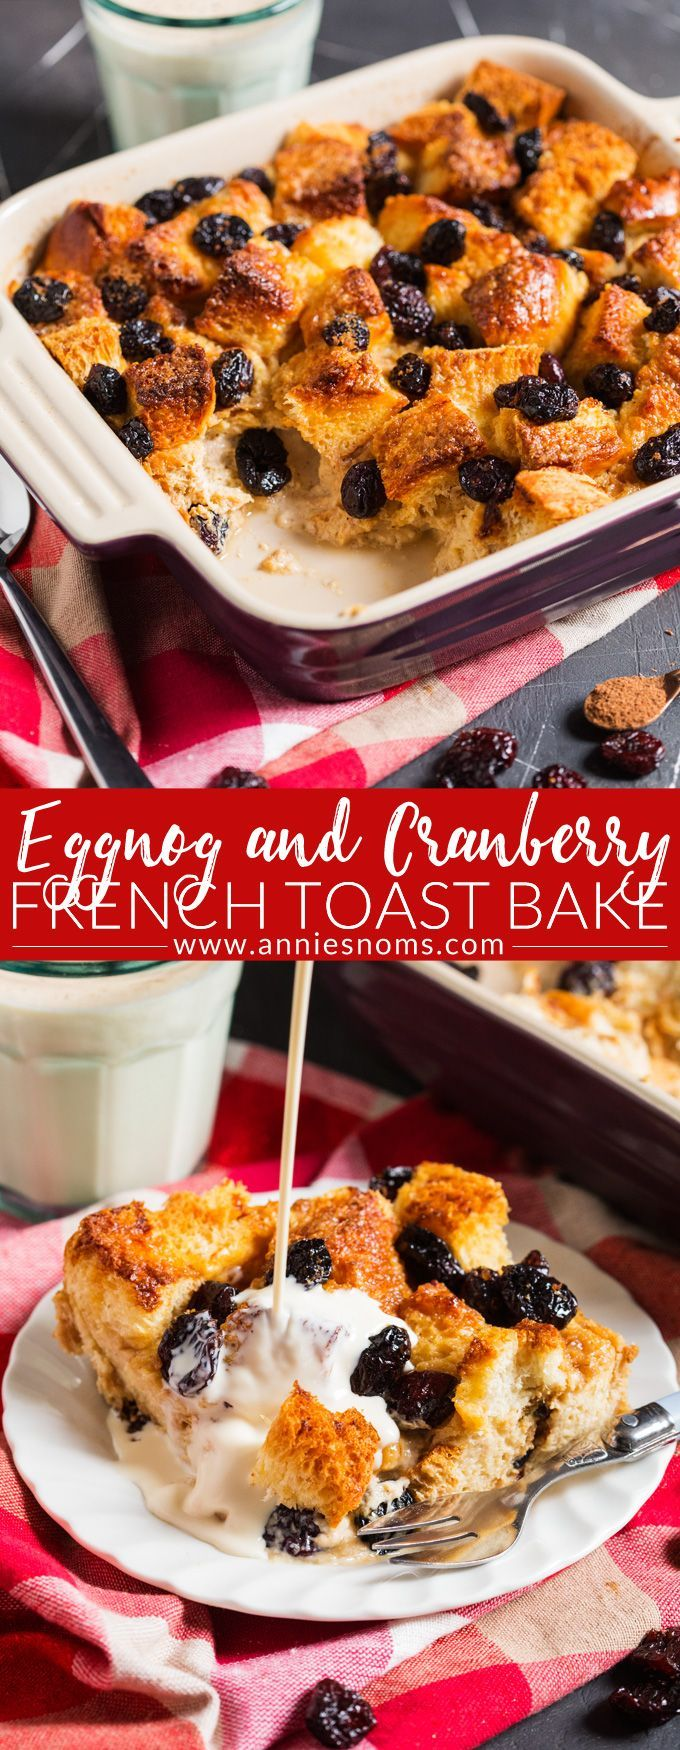 This Eggnog and Cranberry French Toast Bake is the perfect festive brunch recipe; easy to prepare and utterly divine, you are bound to fall in love with it!